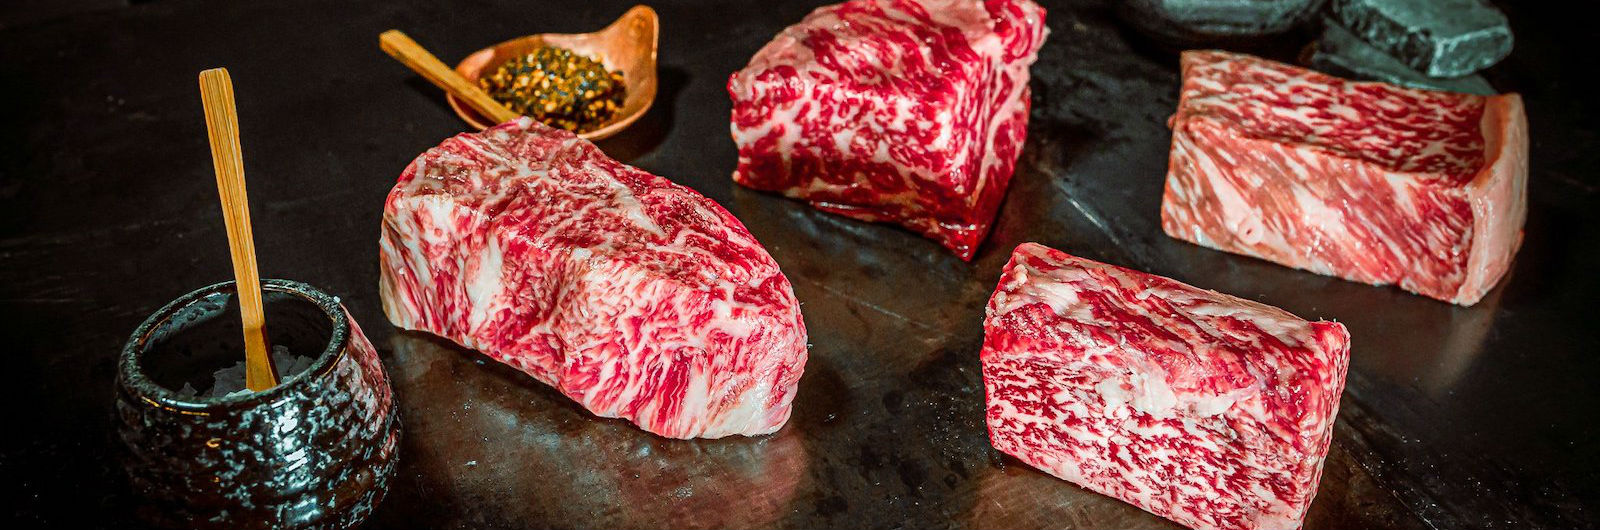 Knock Knock, the Wagyu Is Here